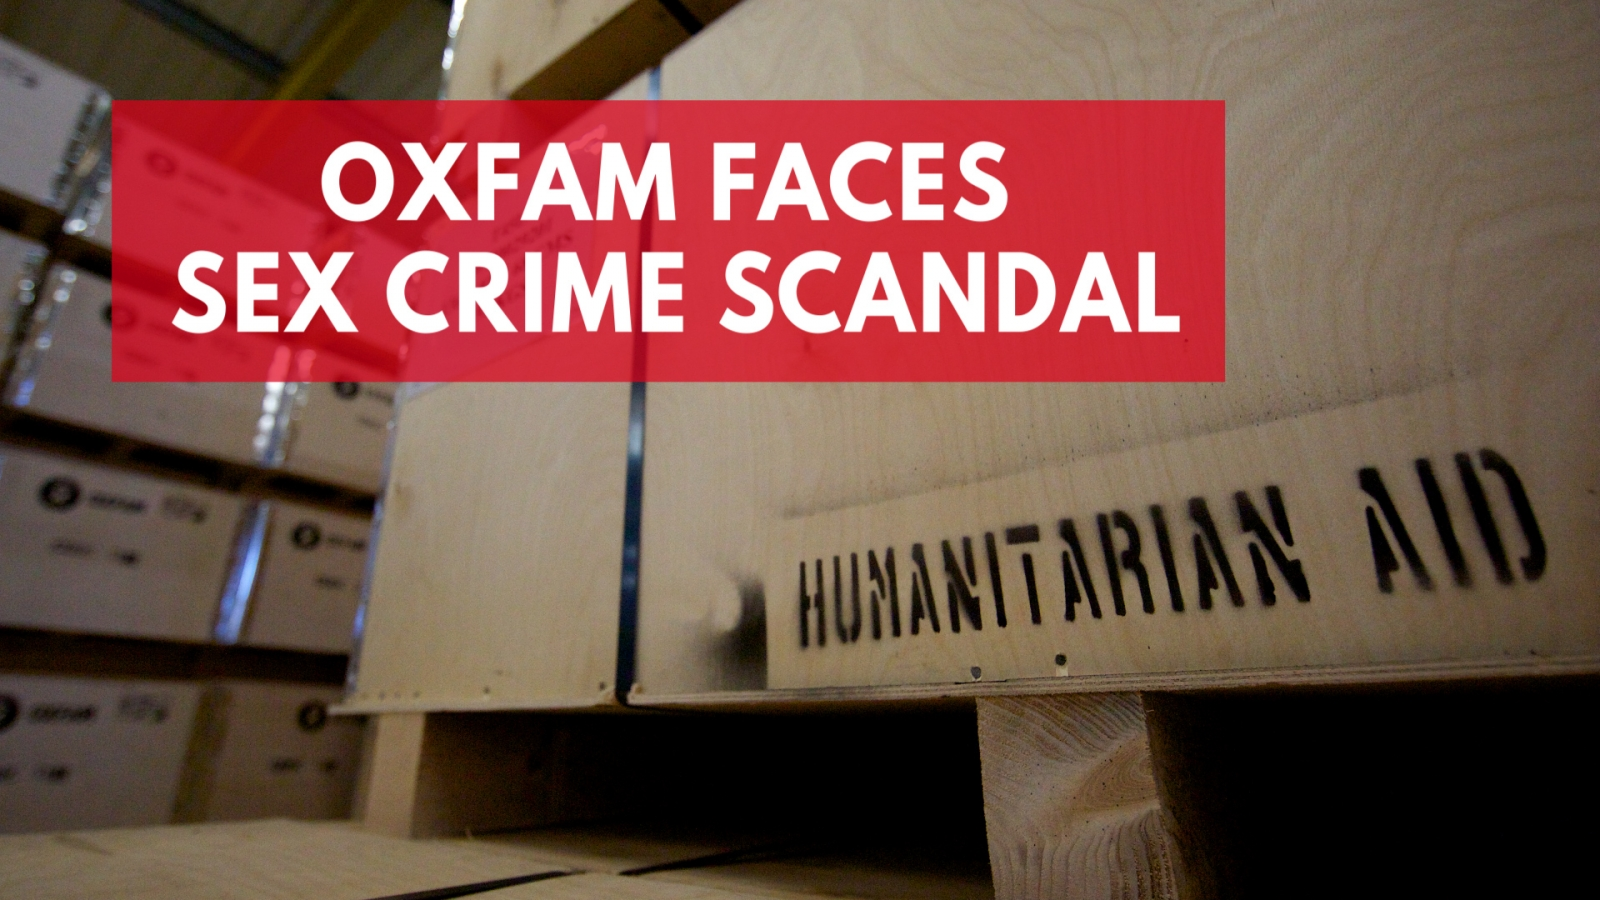 oxfam-faces-sex-crime-scandal-in-haiti-following-2010-earthquake